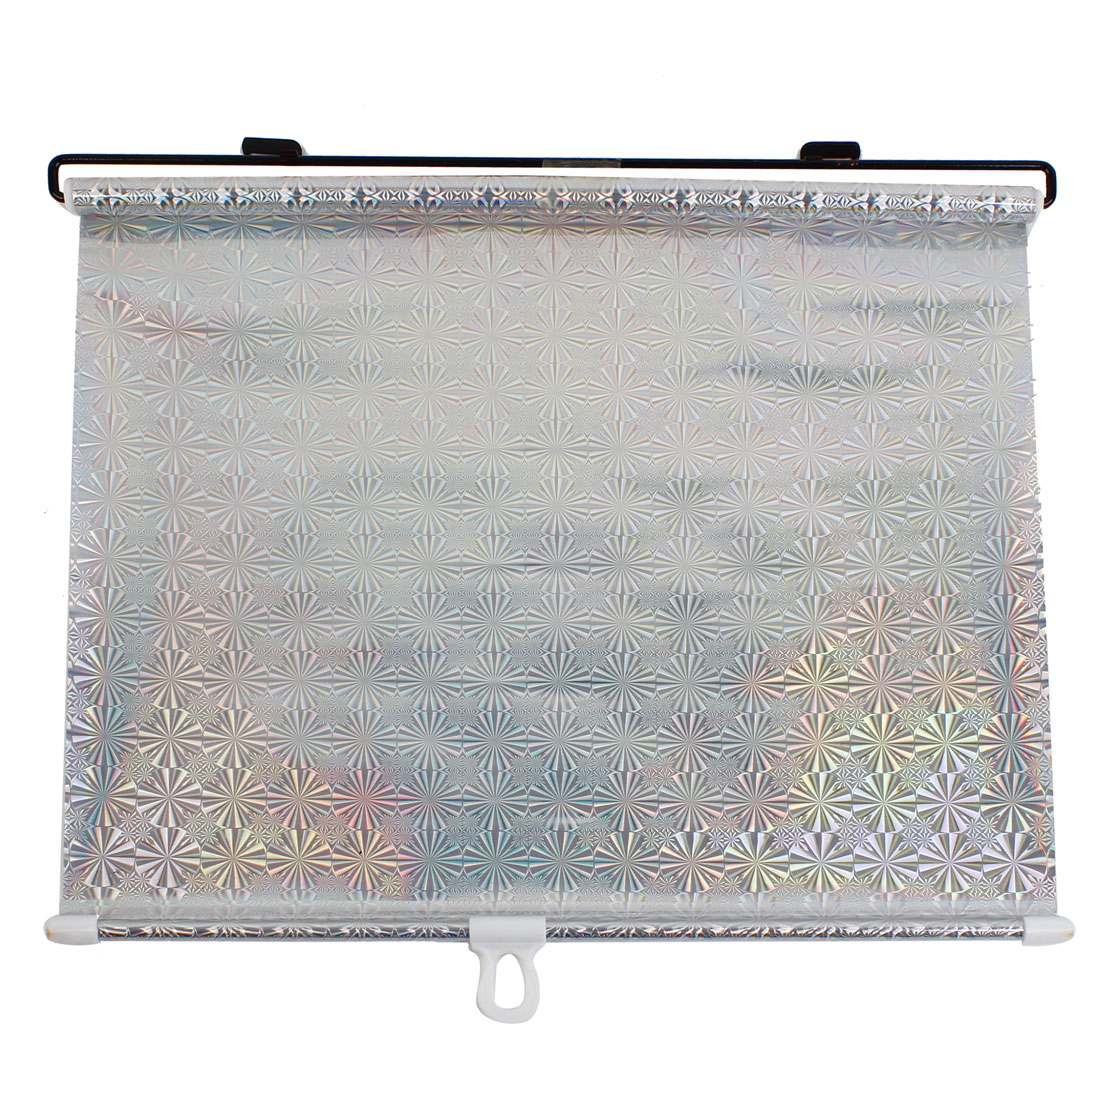 Silver Tone 130 x 50cm Vehicle Car Window Sun Shield Shade Visor